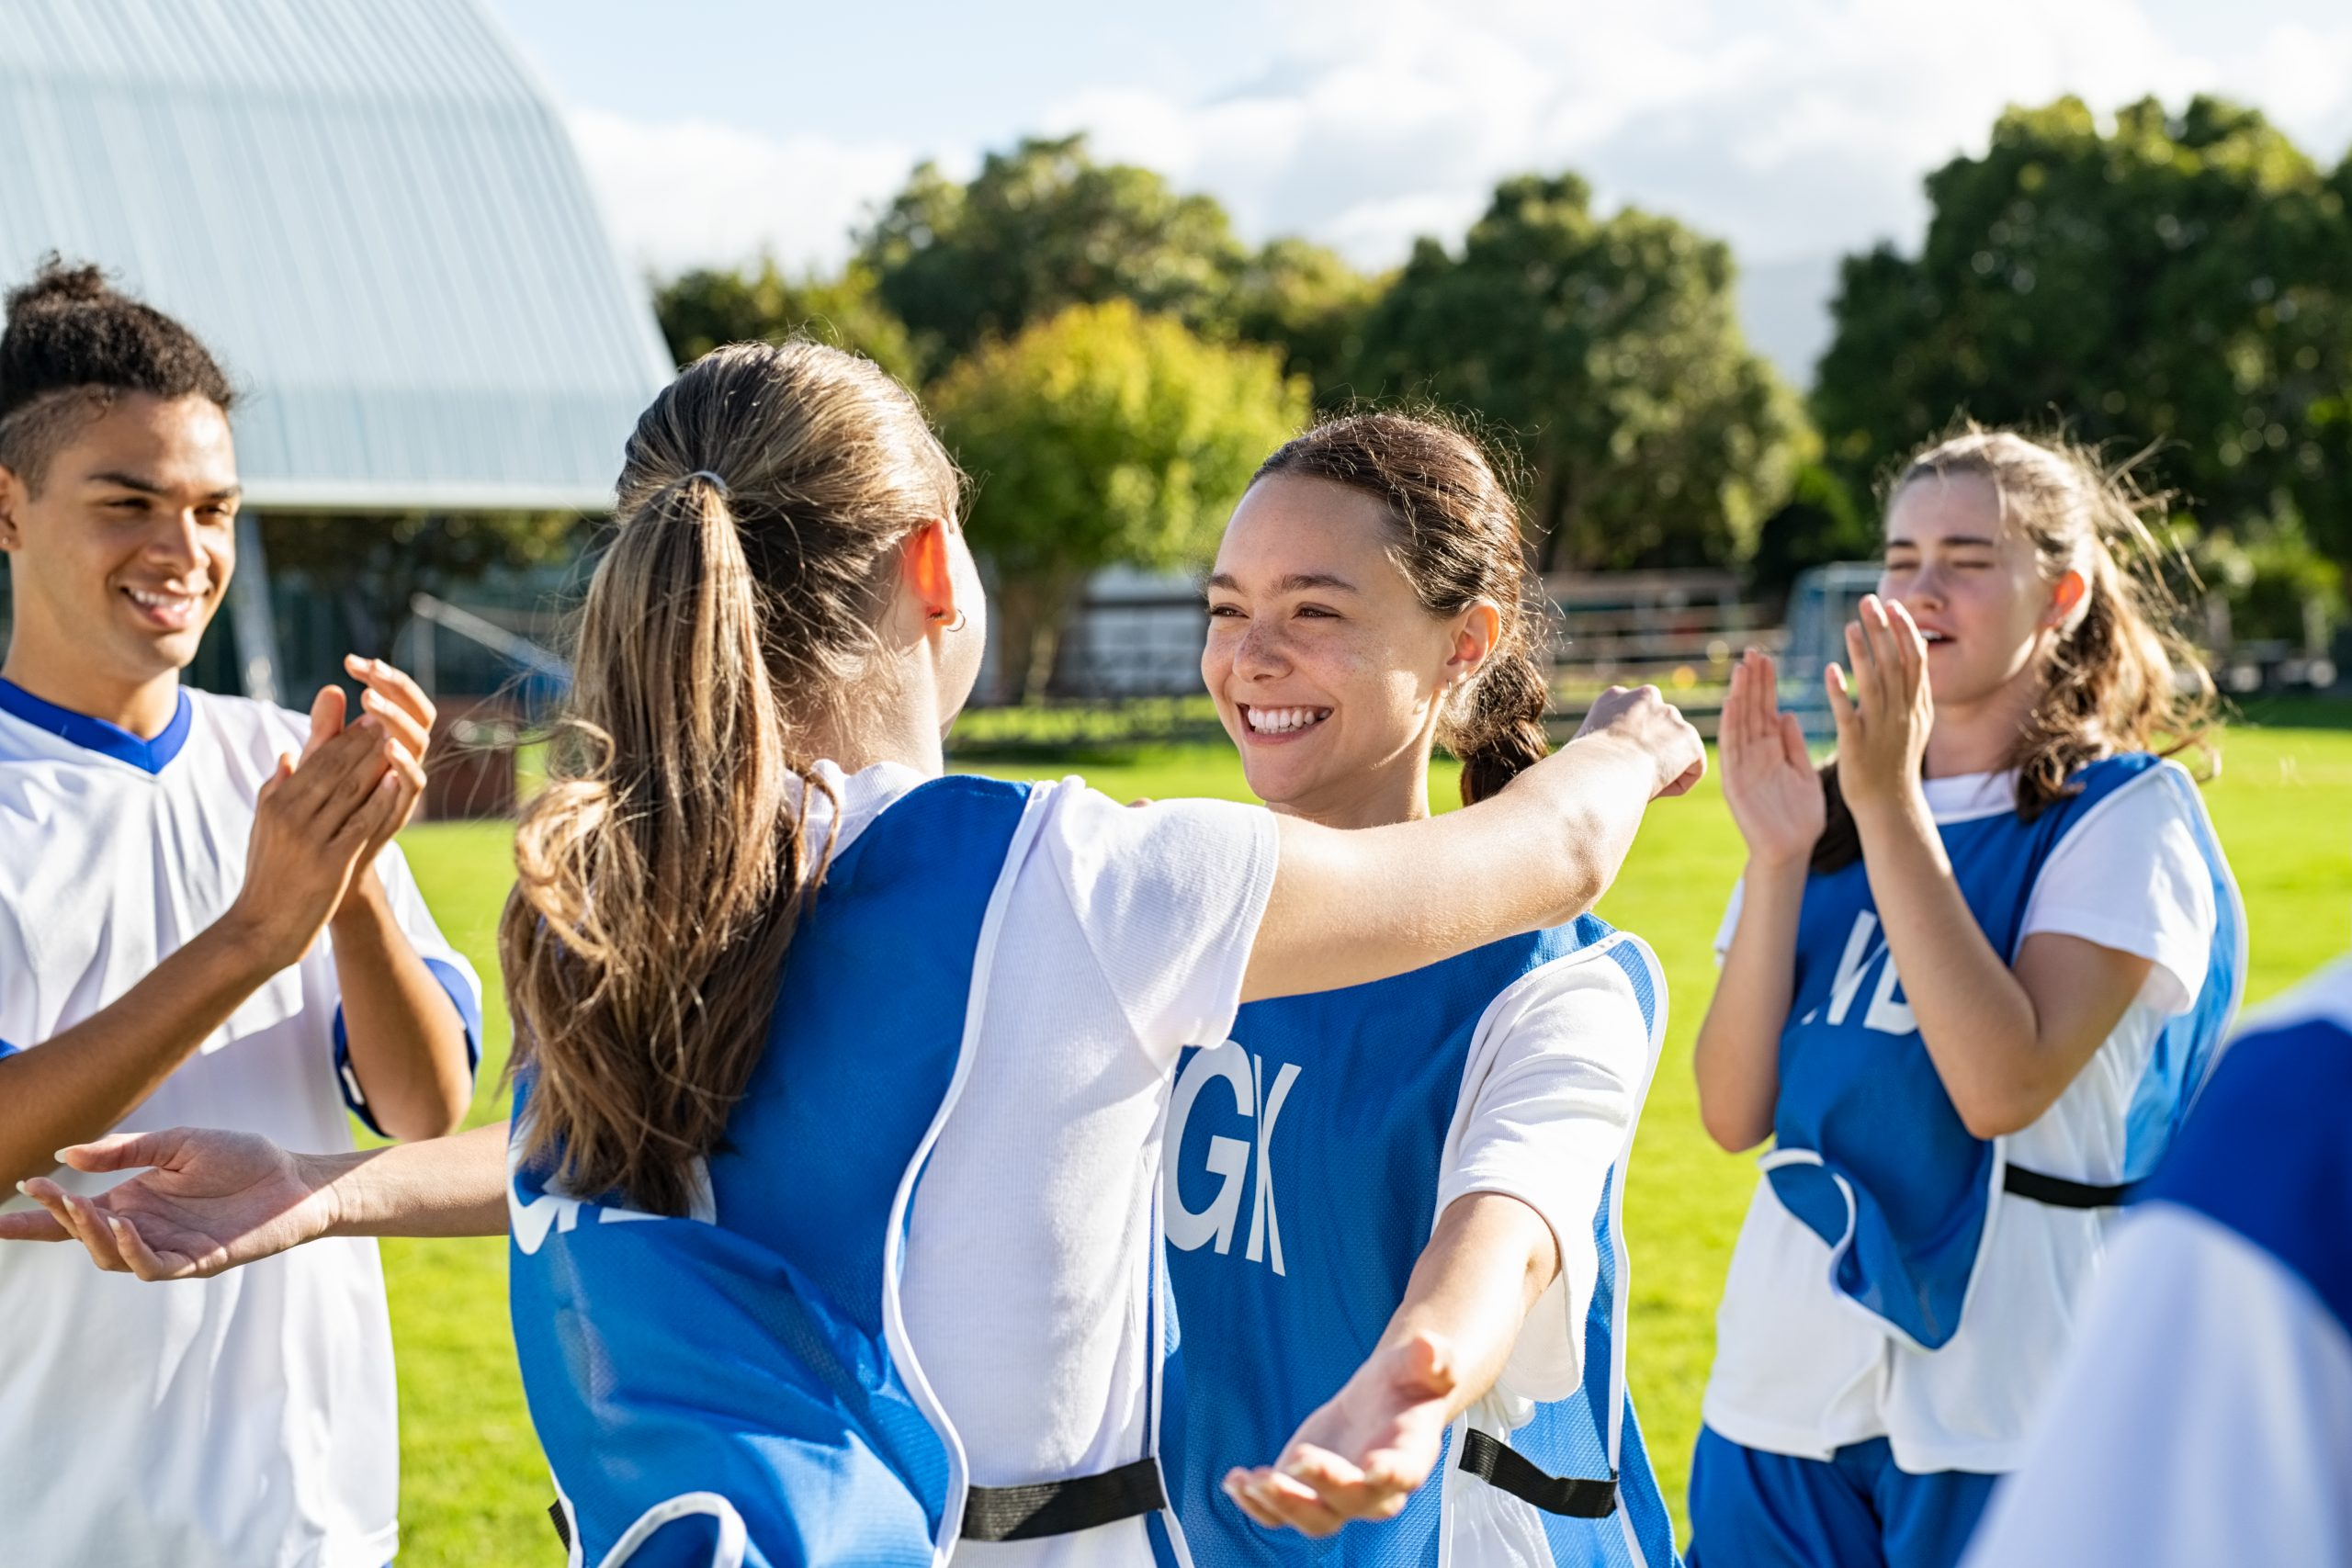 Young woman football players hugging with open arms after goal. College teammates hugging and celebrating victory. Two happy friends hugging on soccer field after sport match.